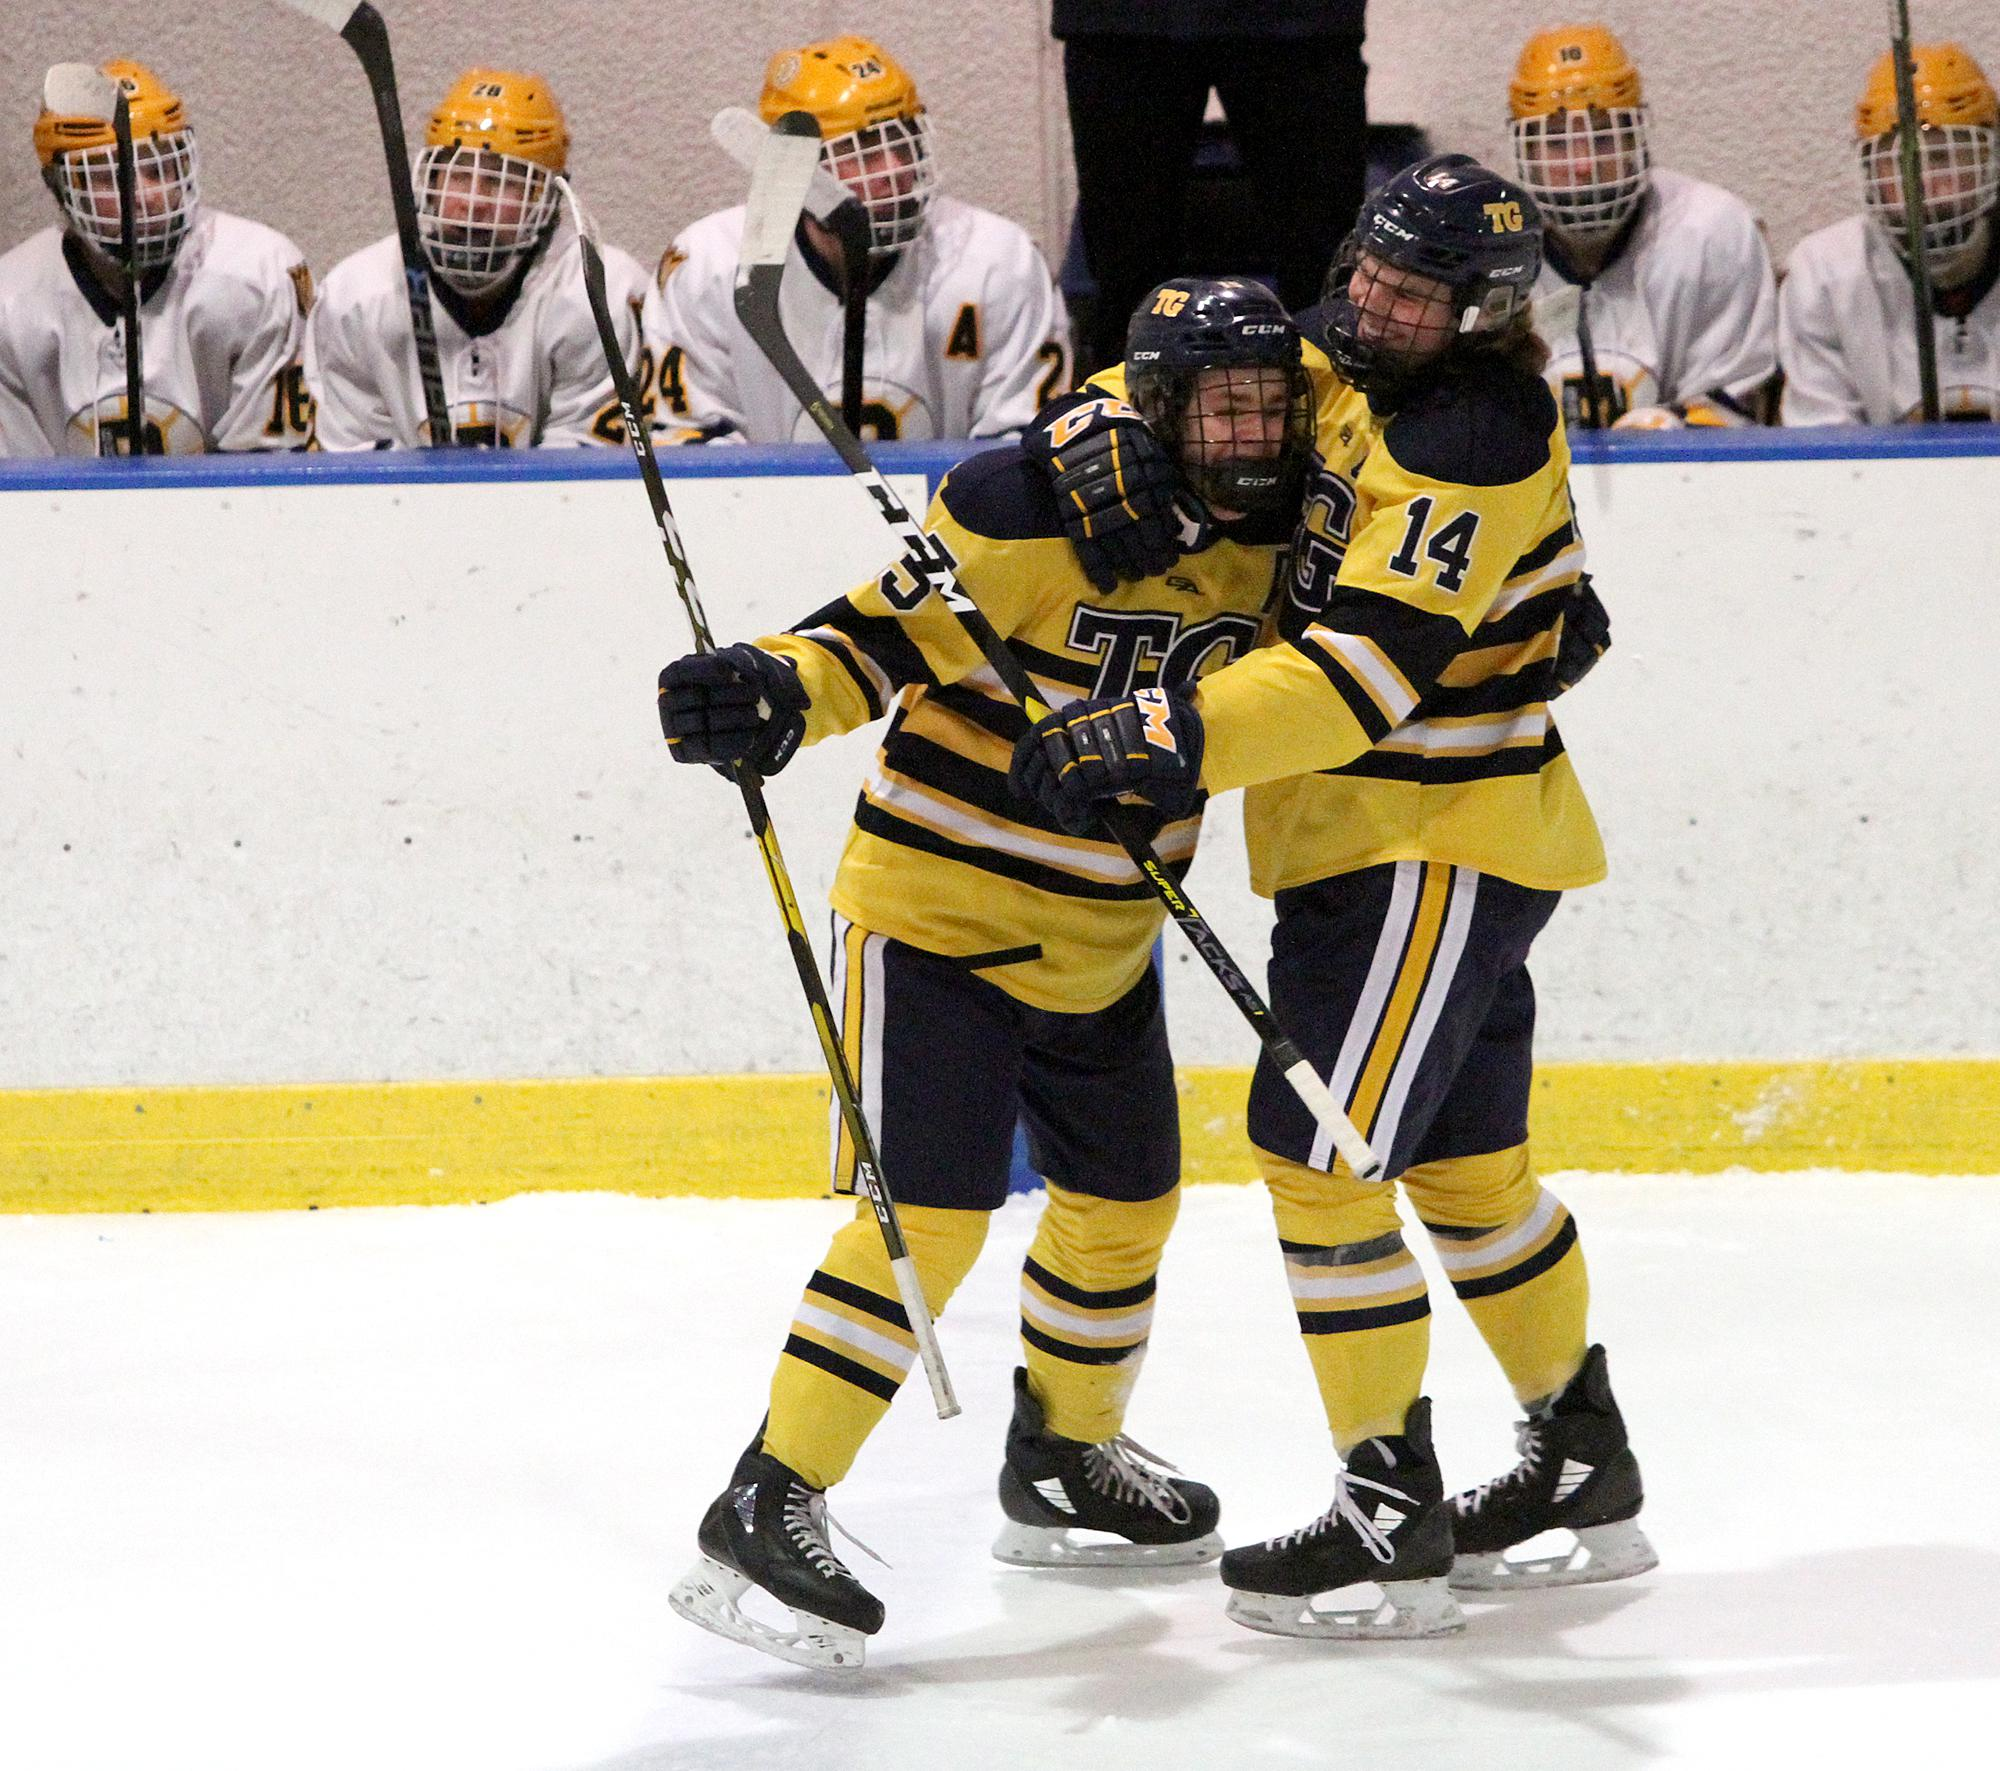 Totino-Grace seniors Caleb Meehan (15) and Jake Wacek (14) celebrate Meehan's second goal of the first period Saturday in Golden Valley. Photo by Drew Herron, SportsEngine